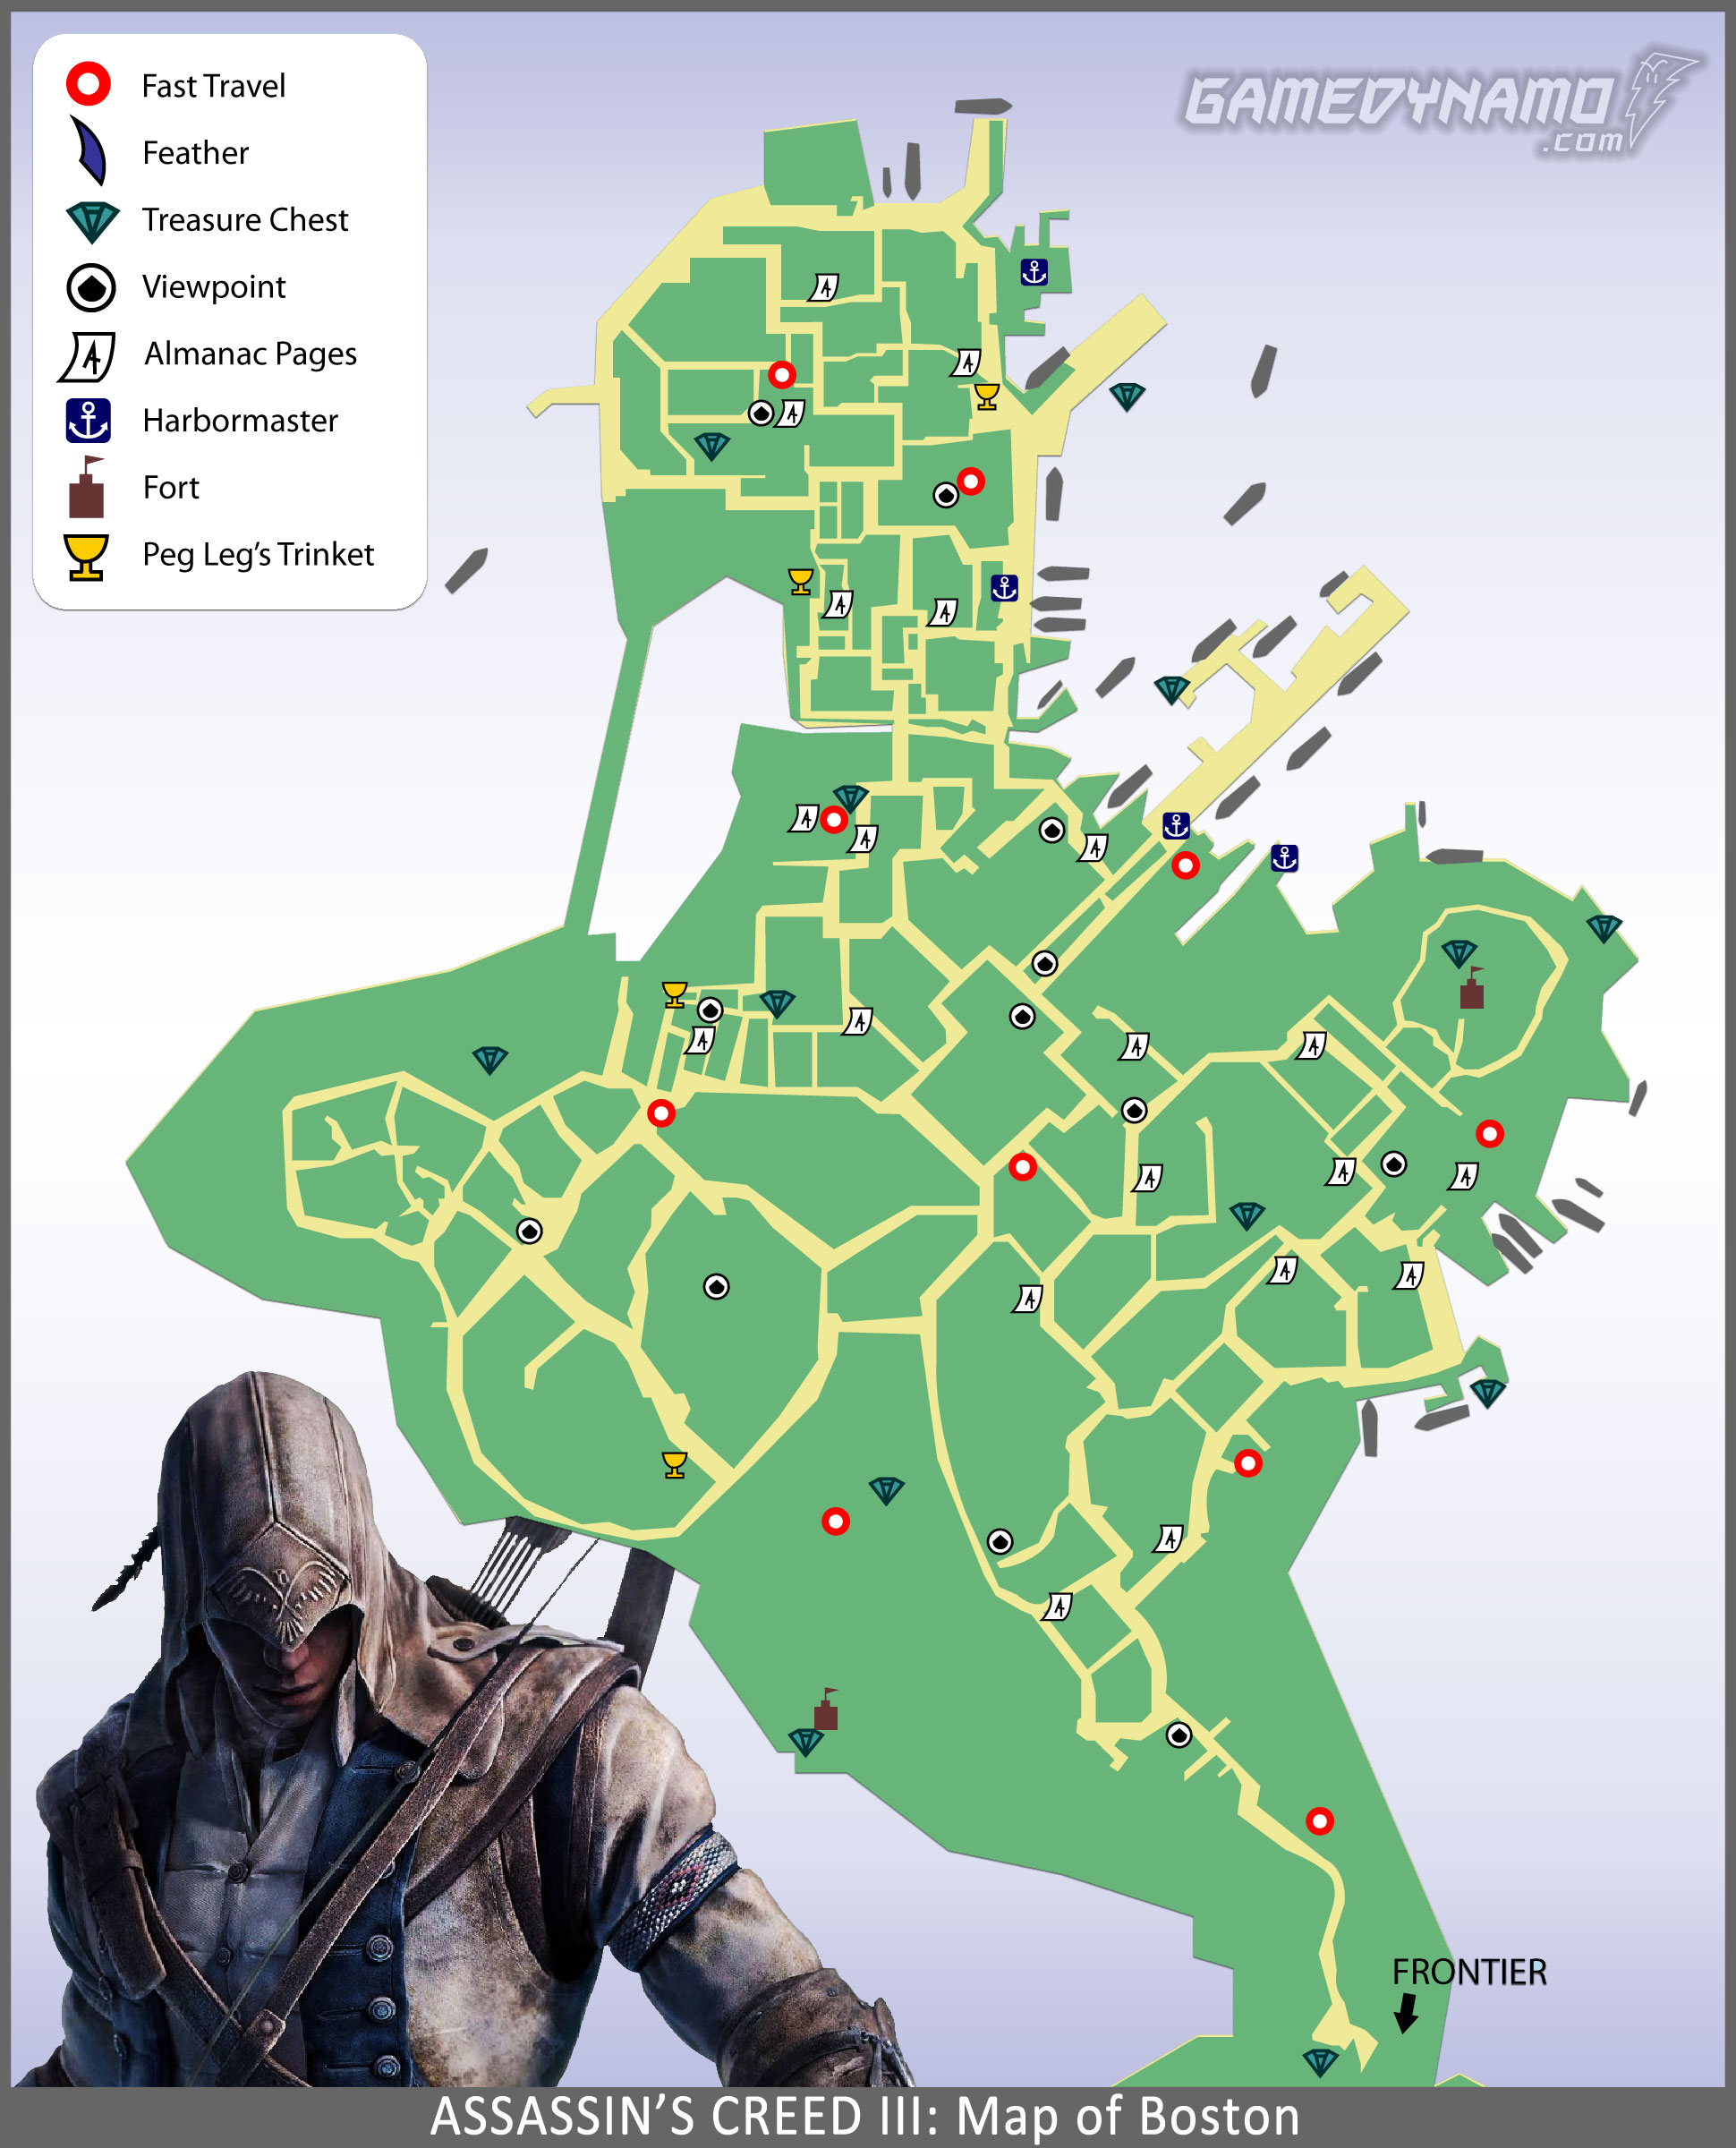 Assassin's Creed III Maps   Feathers, Viewpoints, Fast Travel